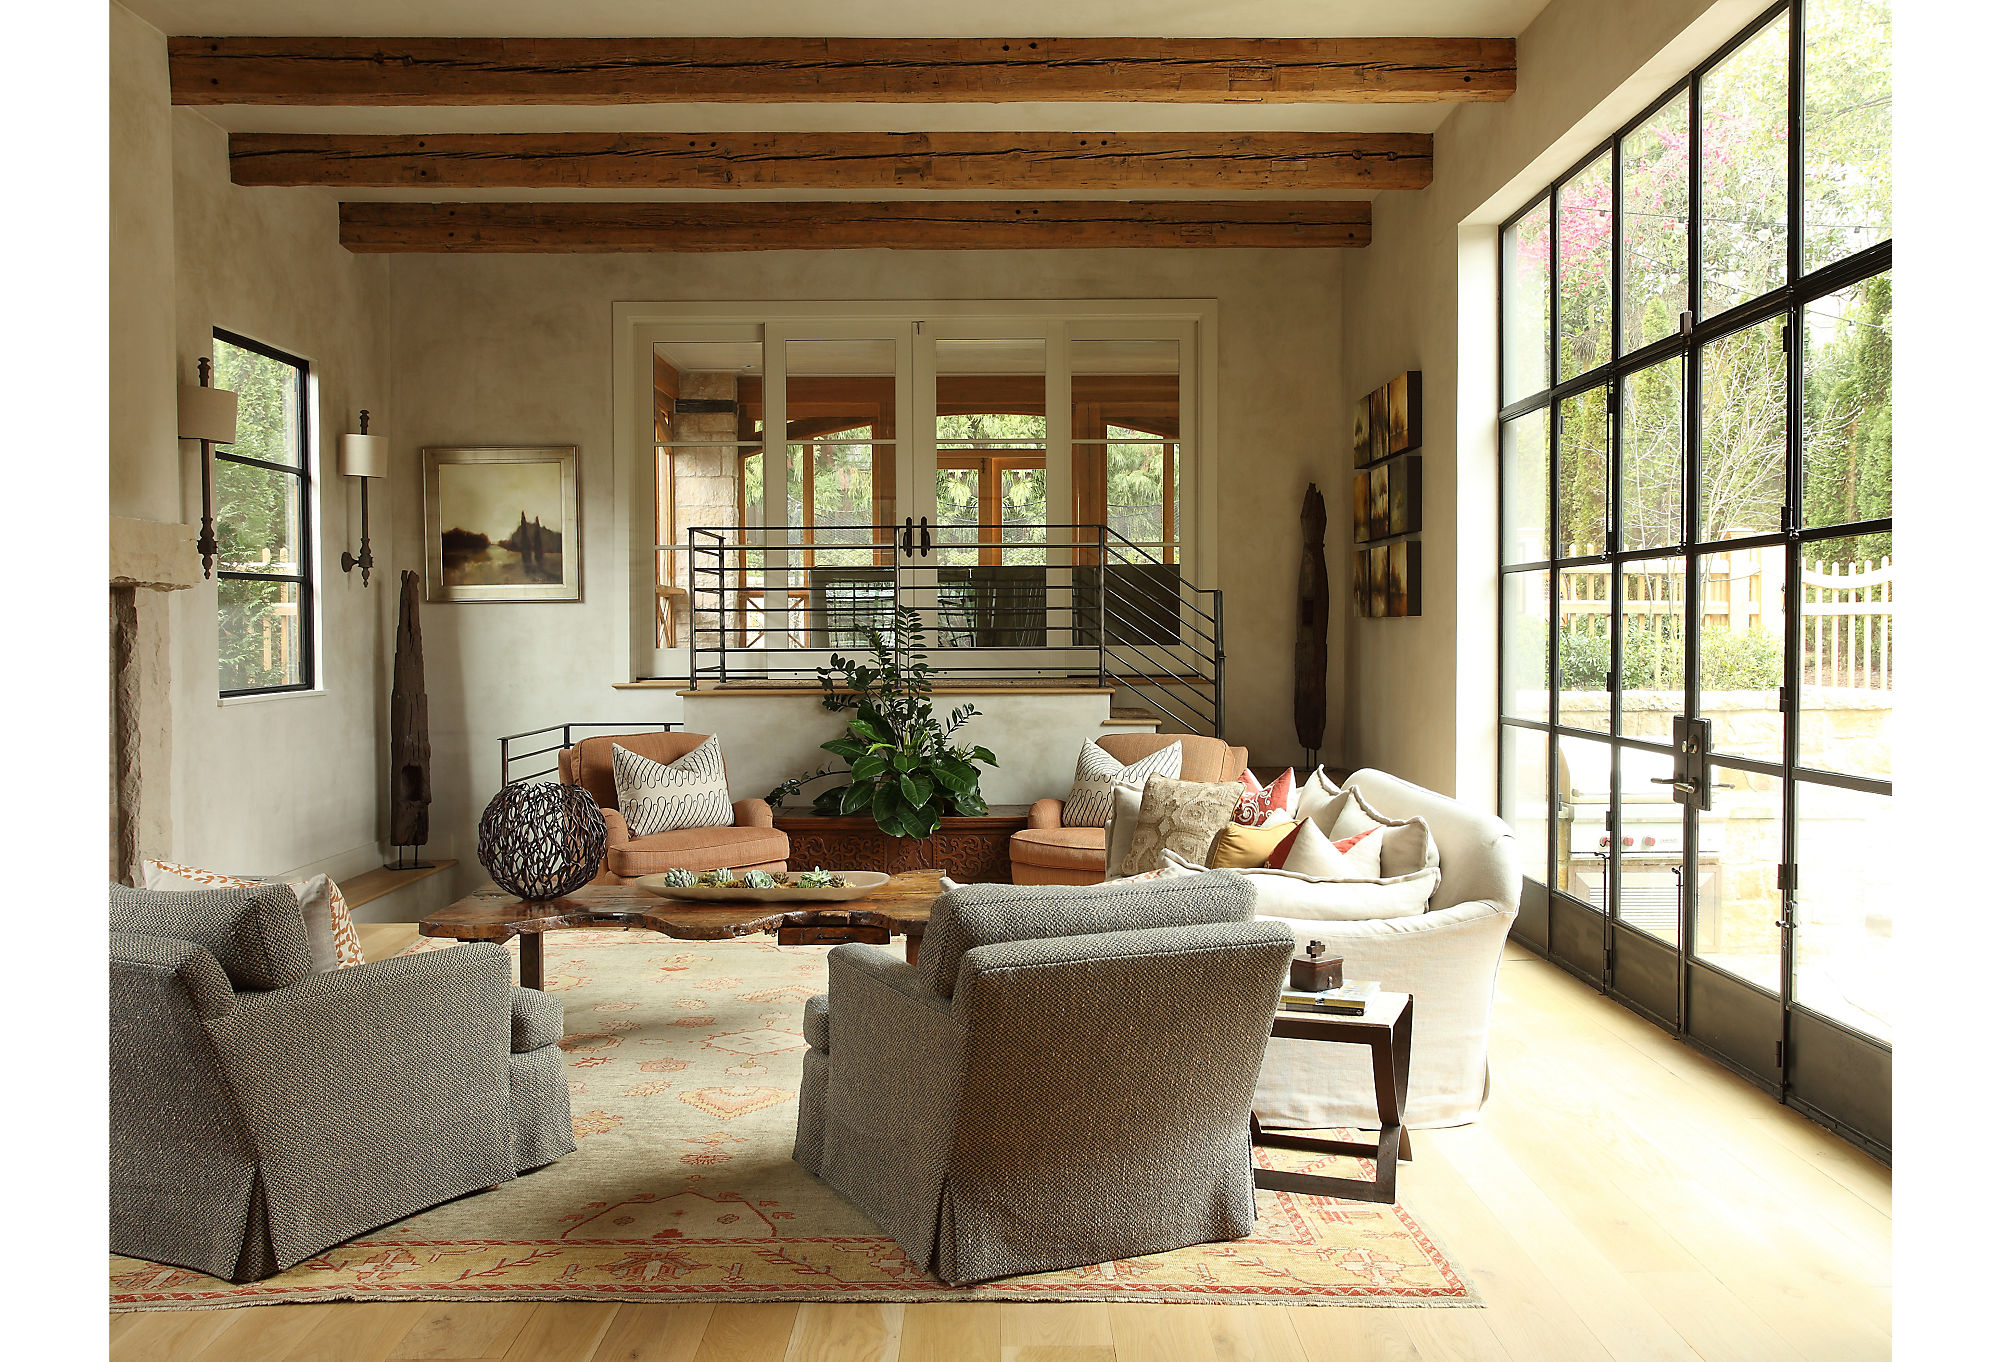 The living room exemplifies the couple's kick-up-your-feet style. Plush sofas and chairs in neutral tones add softness to a space defined by its striking architectural elements.